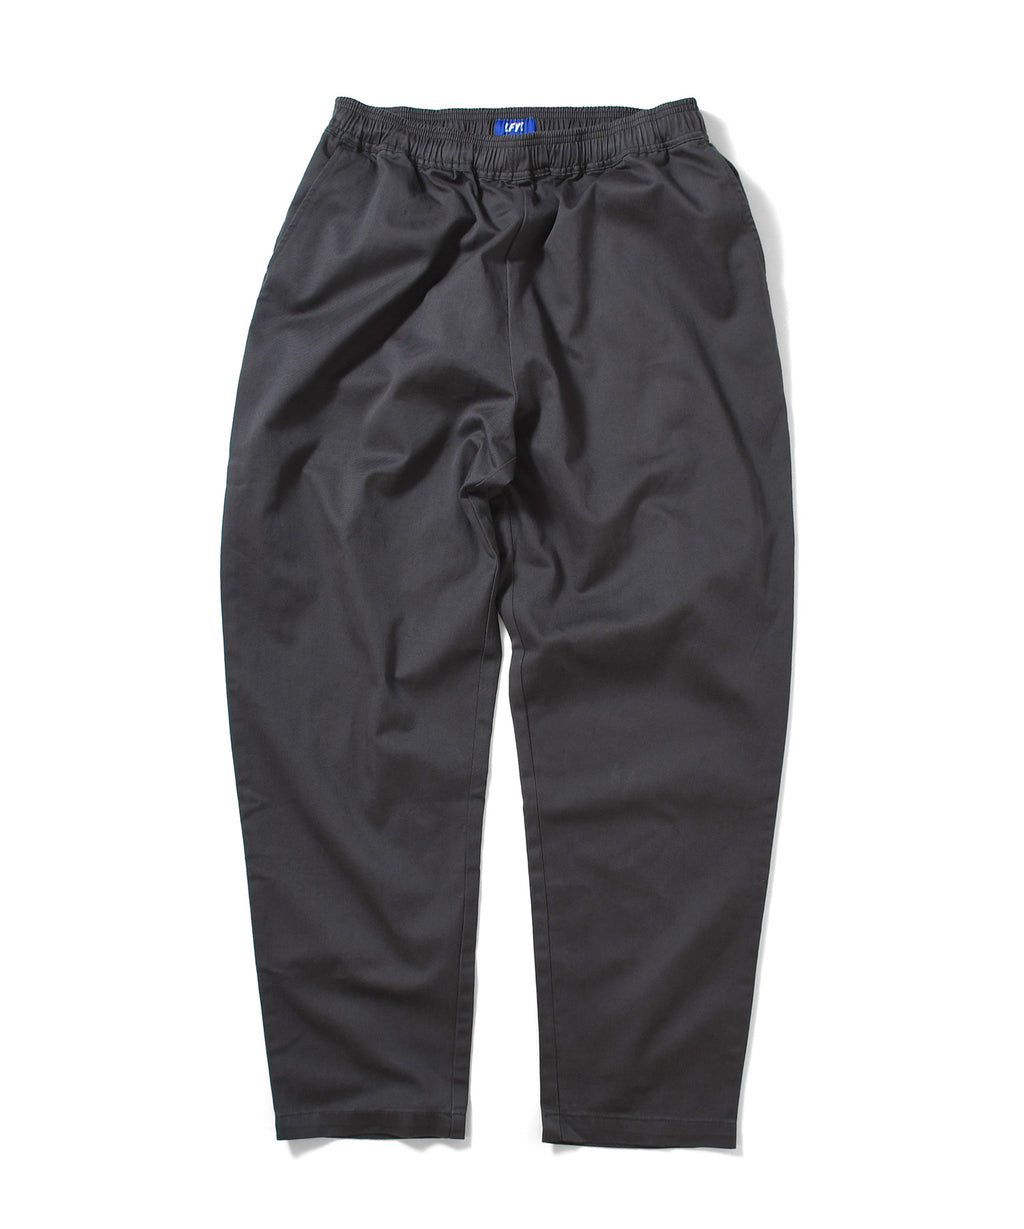 RELAXED FIT CHEF PANTS GRAY LA201204